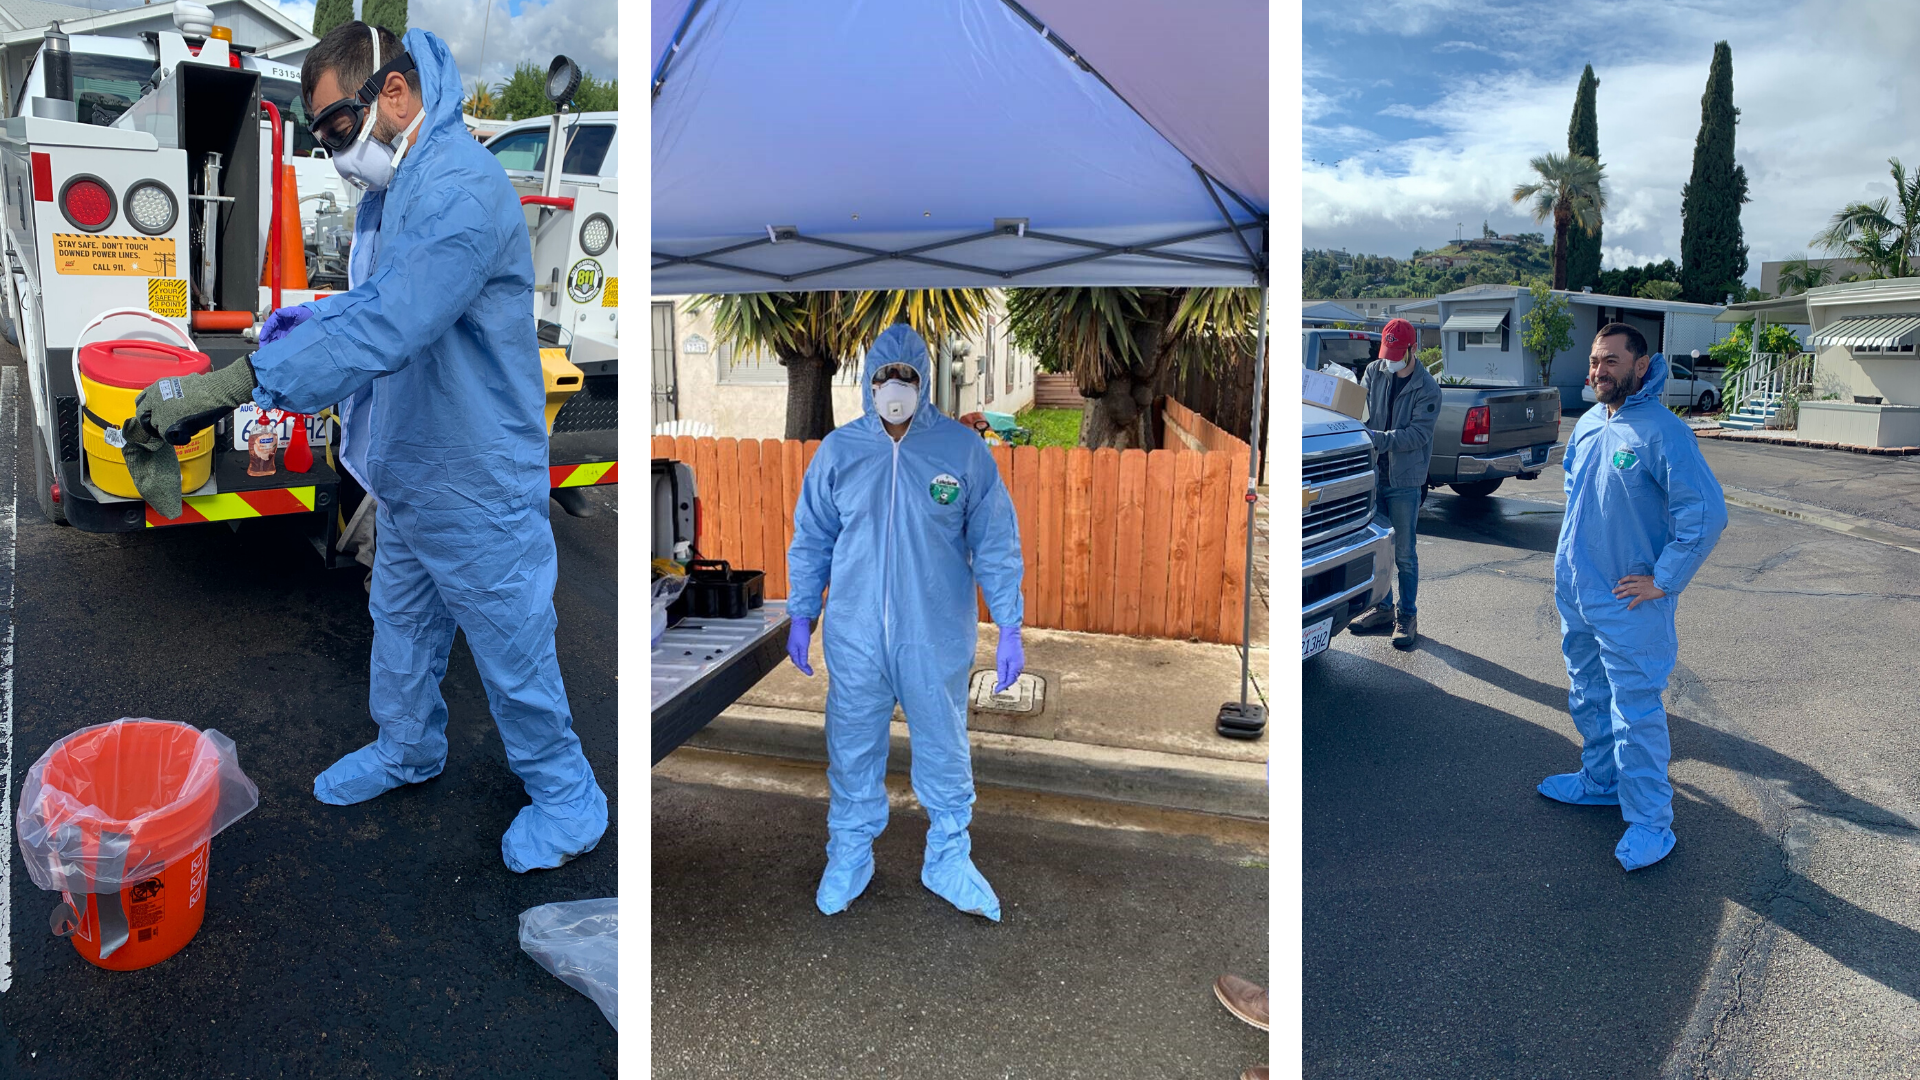 SDG&E employees wear personal protective equipment during COVID-19 crisis.